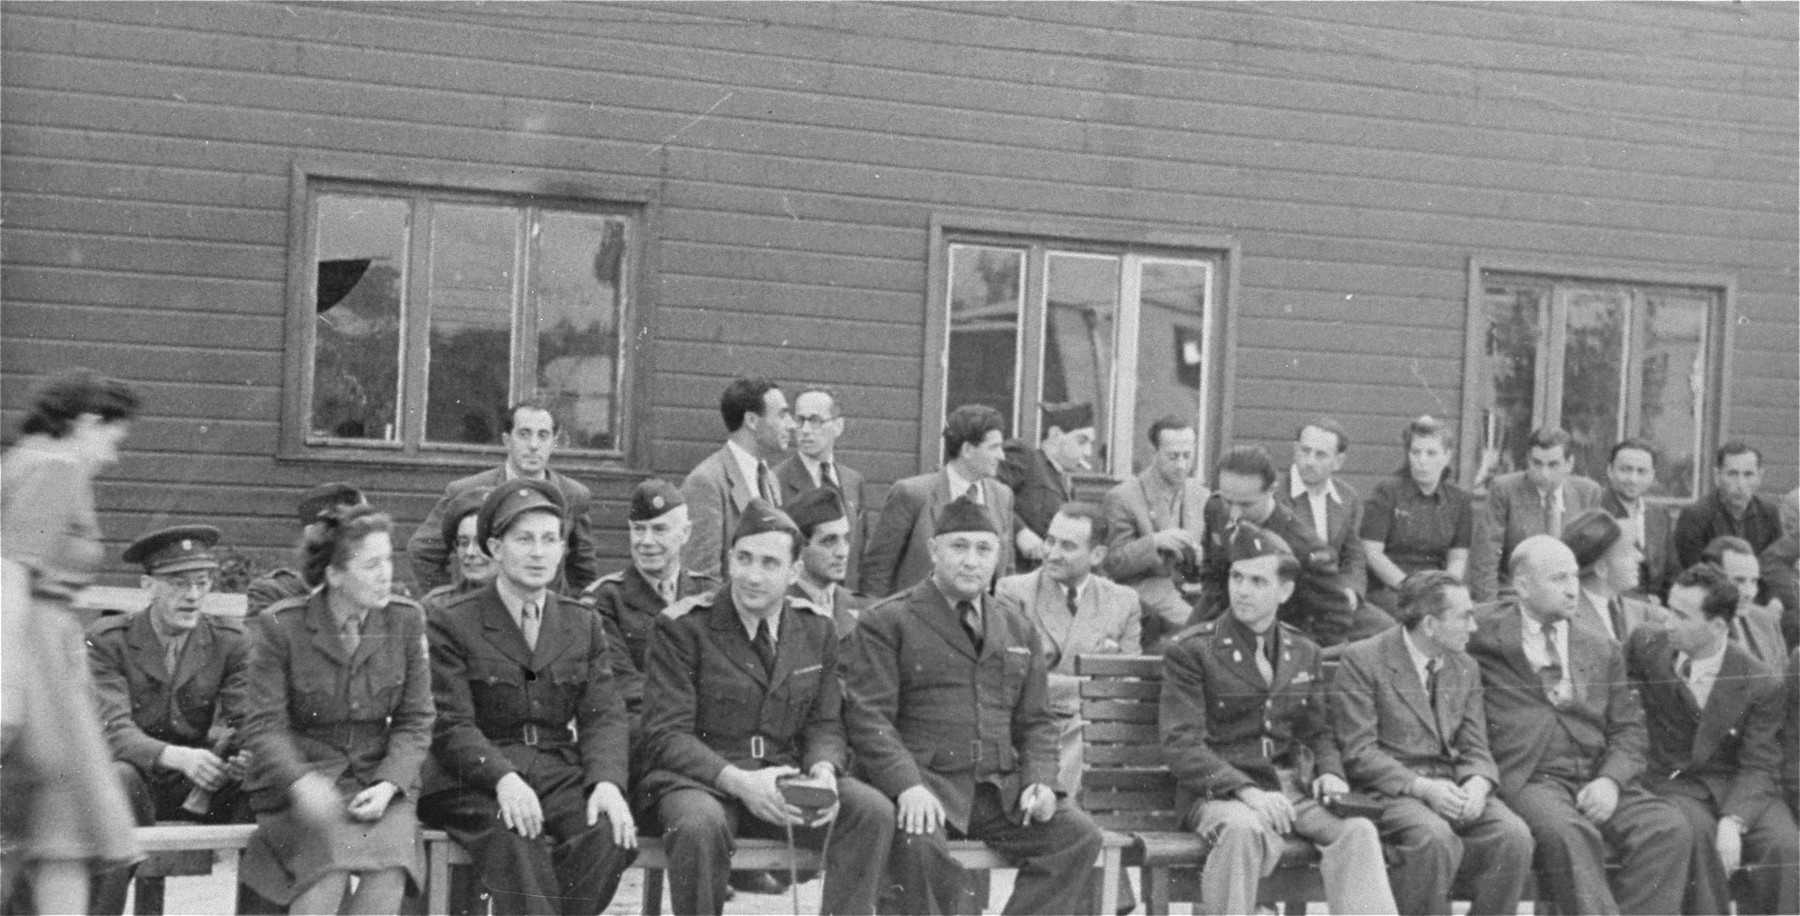 Officials of various agencies attend a ceremony at the Schlachtensee displaced persons camp in Berlin.    Among those pictured in the front row are: Chaim Chonowitz of the Jewish Agency for Palestine (second from the left); Eli Rock, JDC director for Berlin (third from the left); Harold Fishbein, UNRRA director of the Schlachtensee camp (fourth from the left); Chaplain Mayer Abramowitz (fifth from the left) and Szwartzberg, president of the central committee of Schlachtensee.